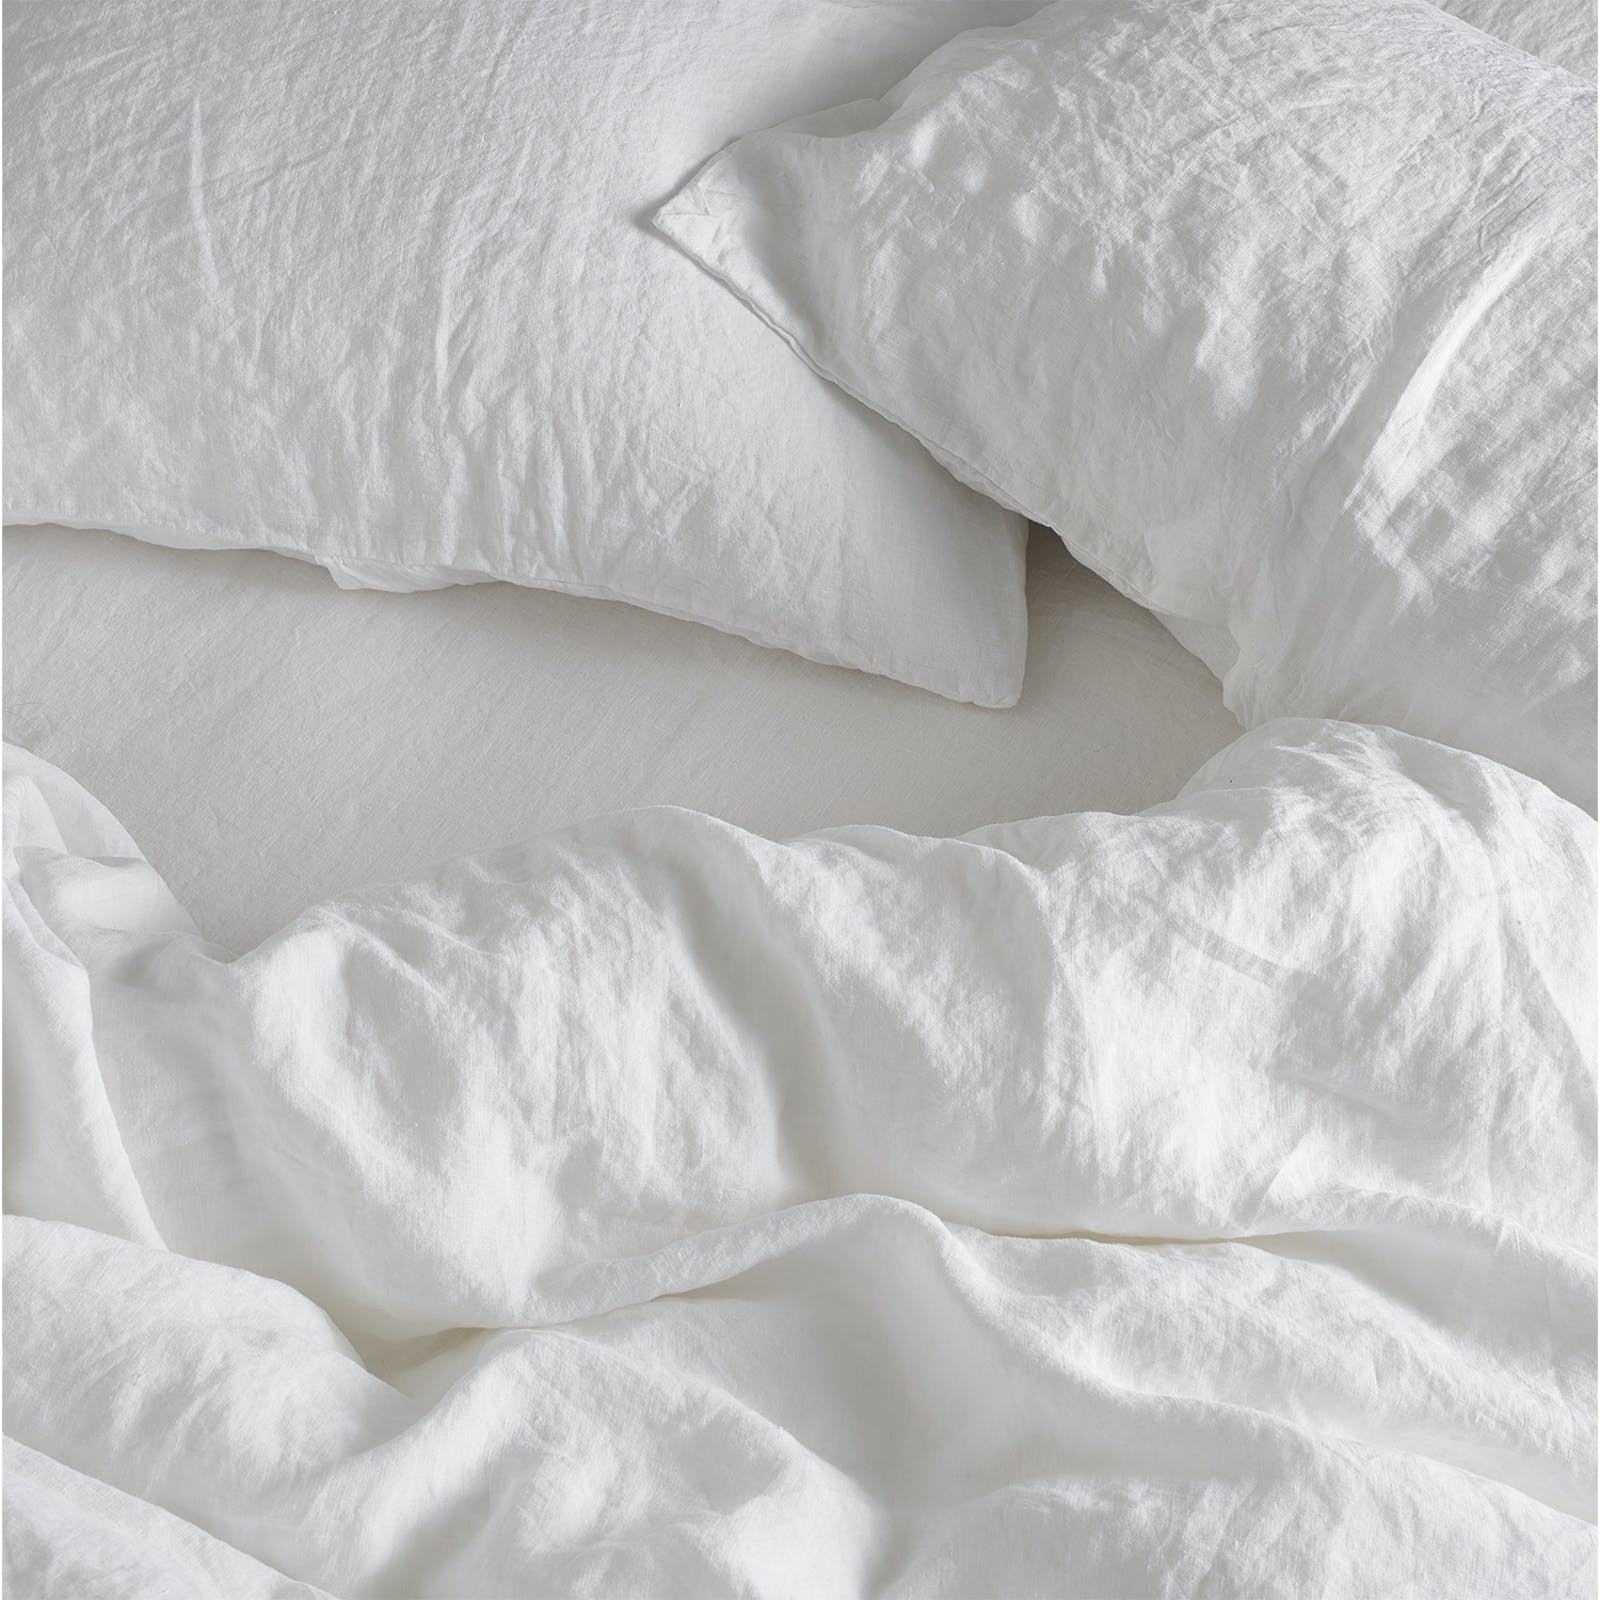 Bedfolk white textured linen bedding